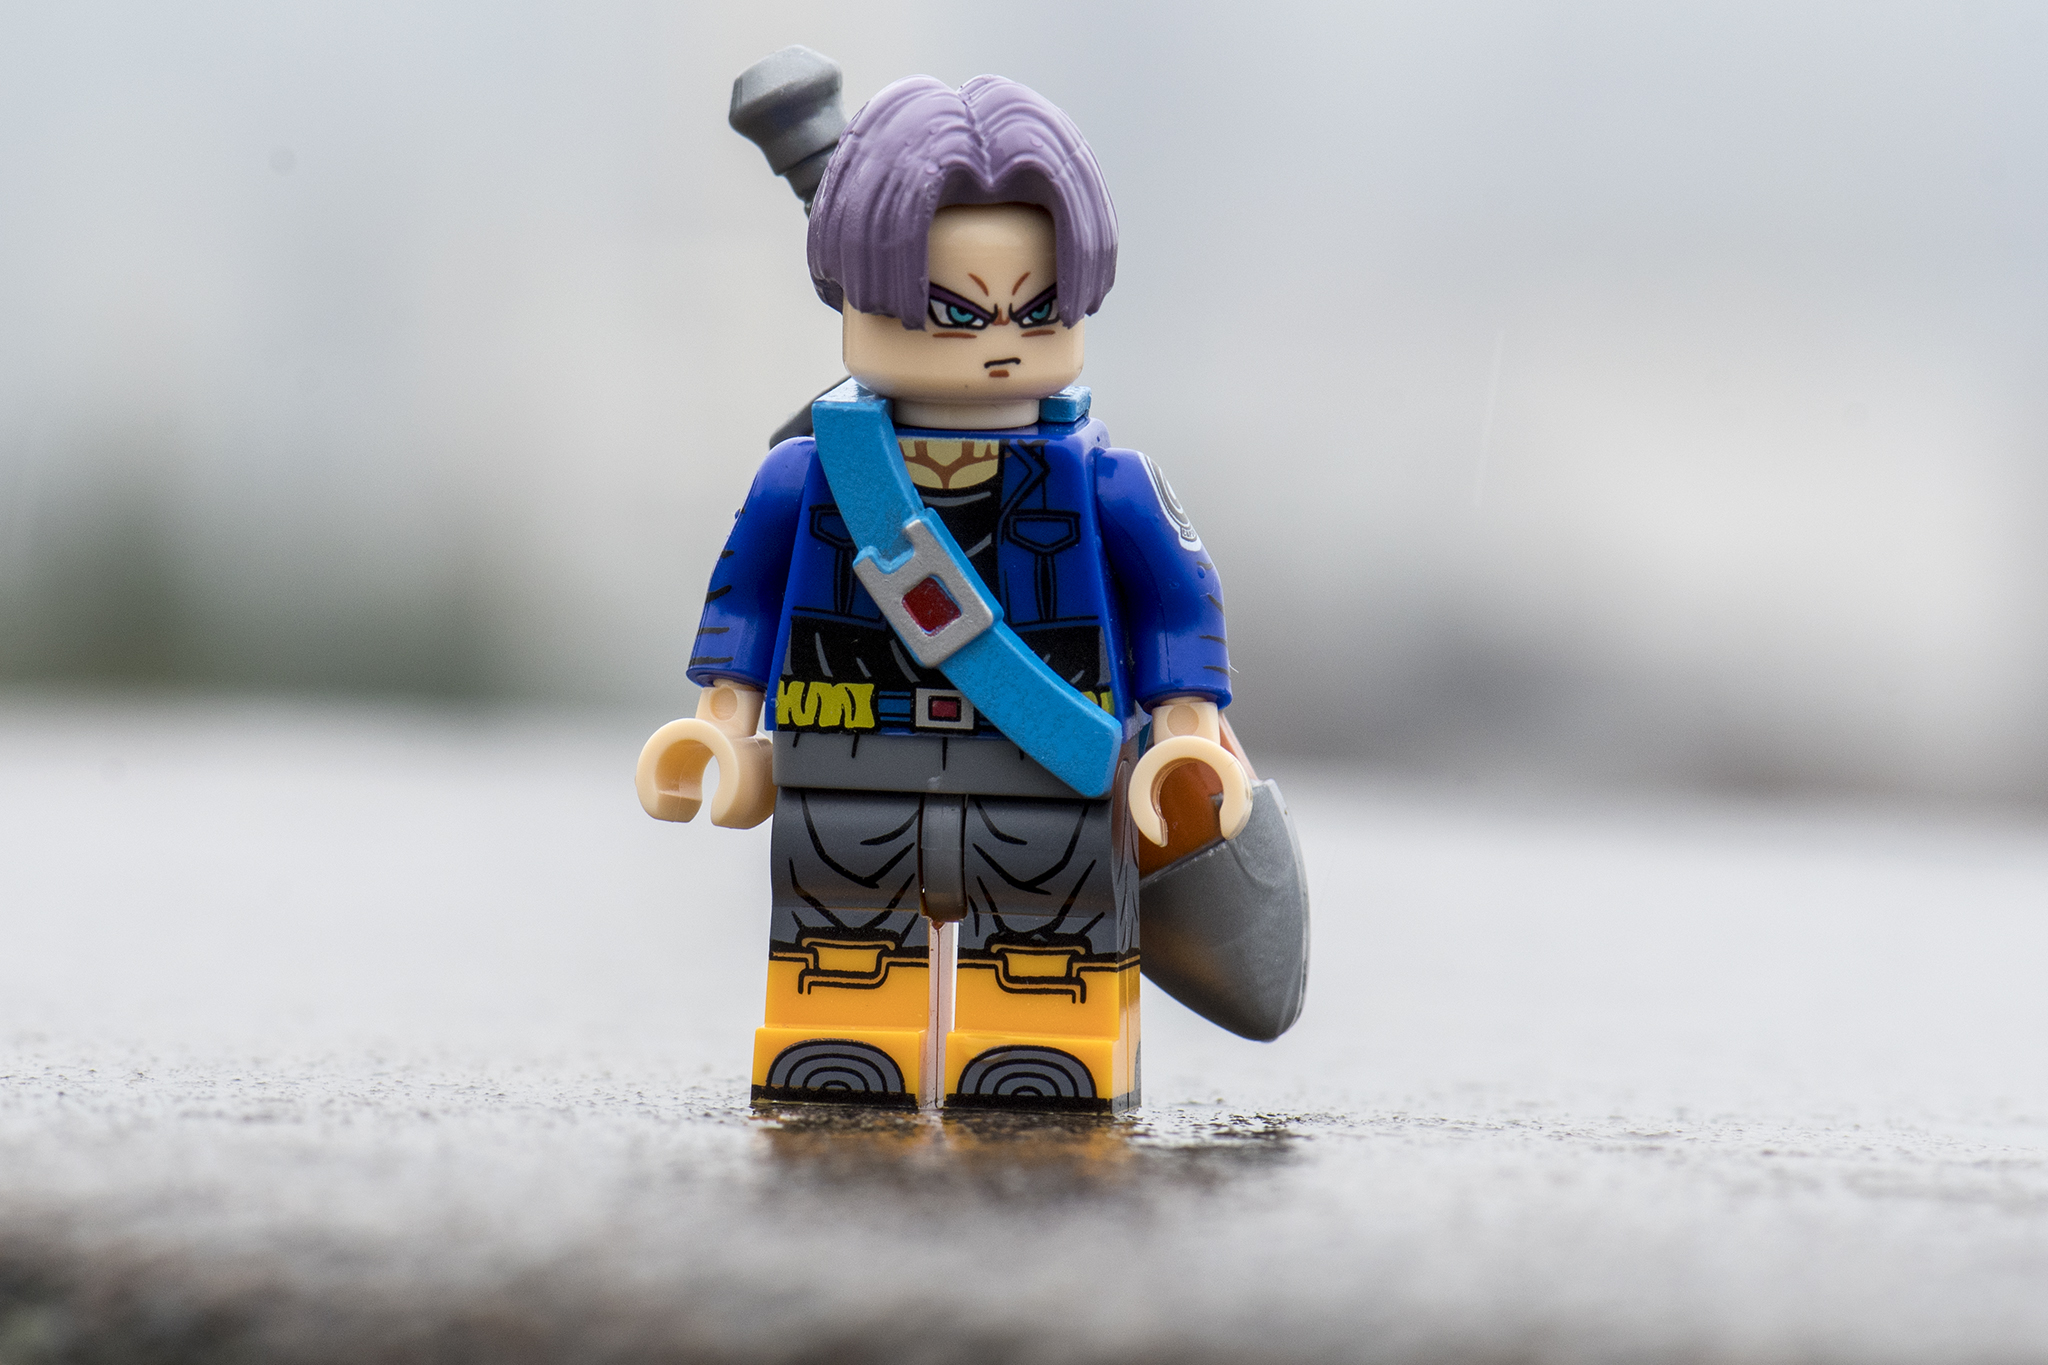 Trunks waiting for the next battle